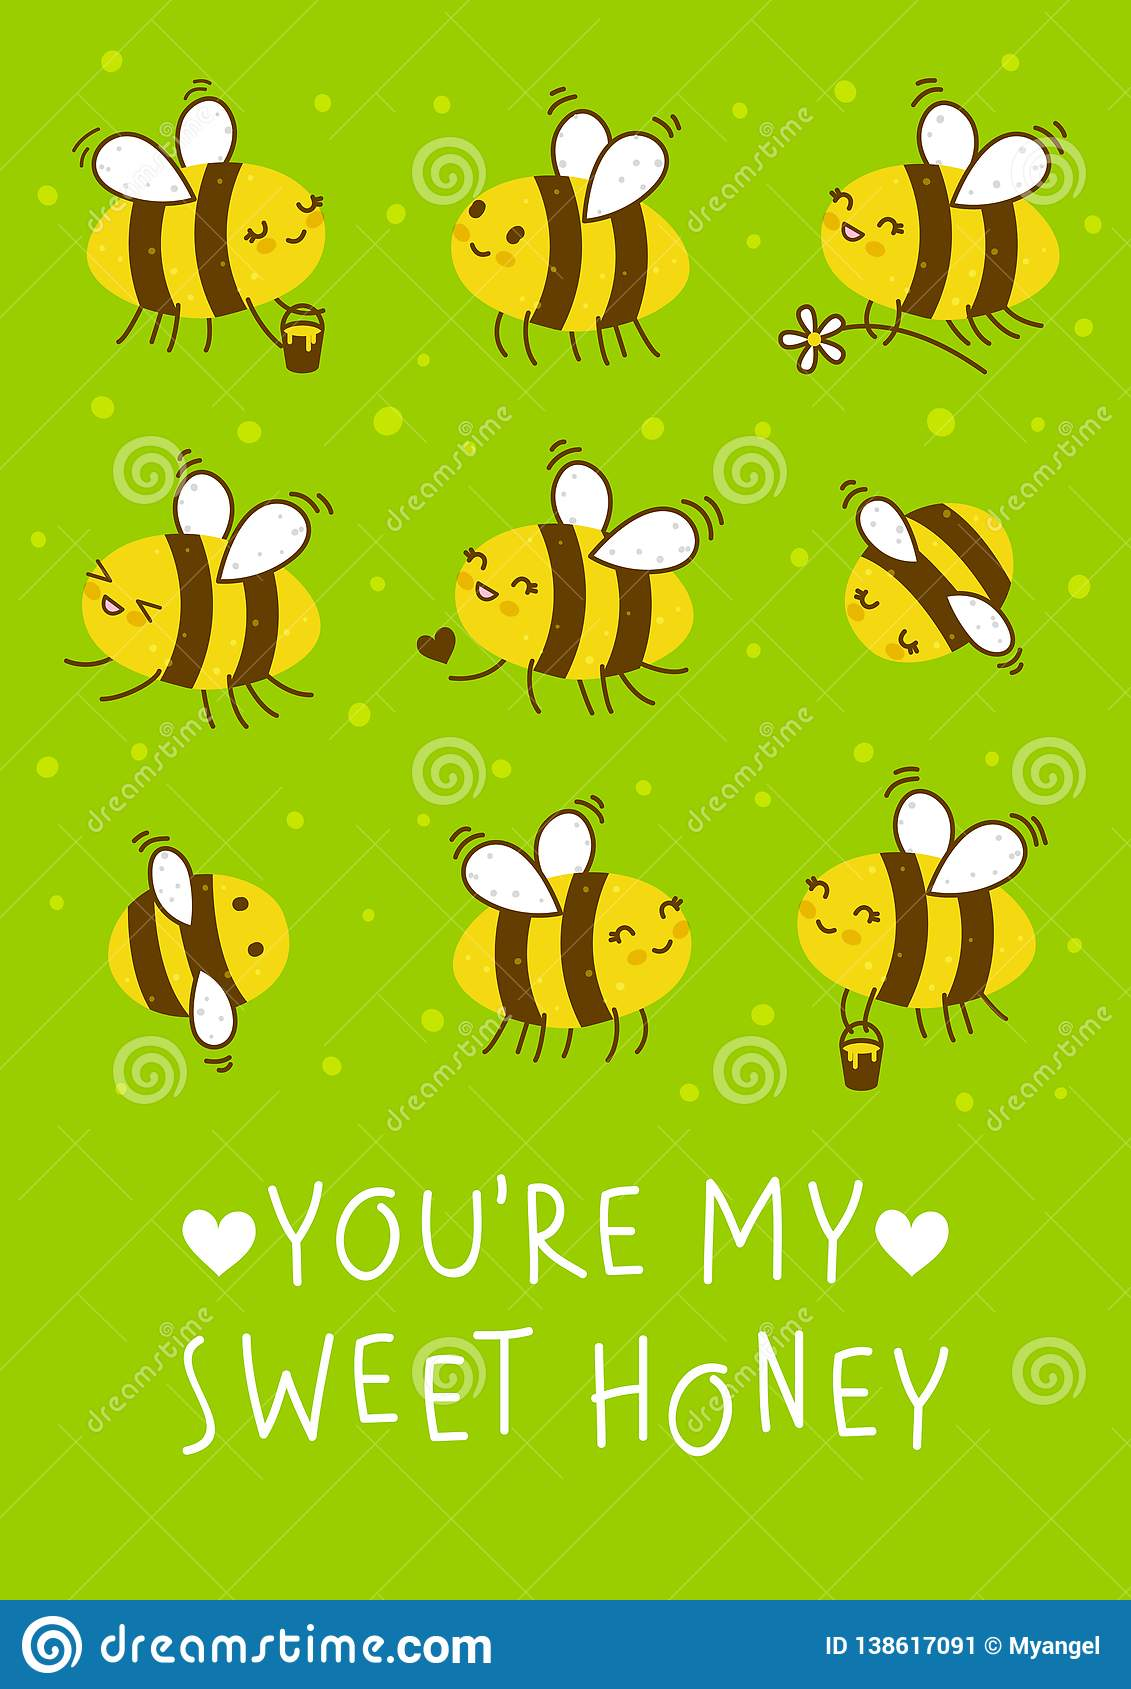 Cute honey bees on green